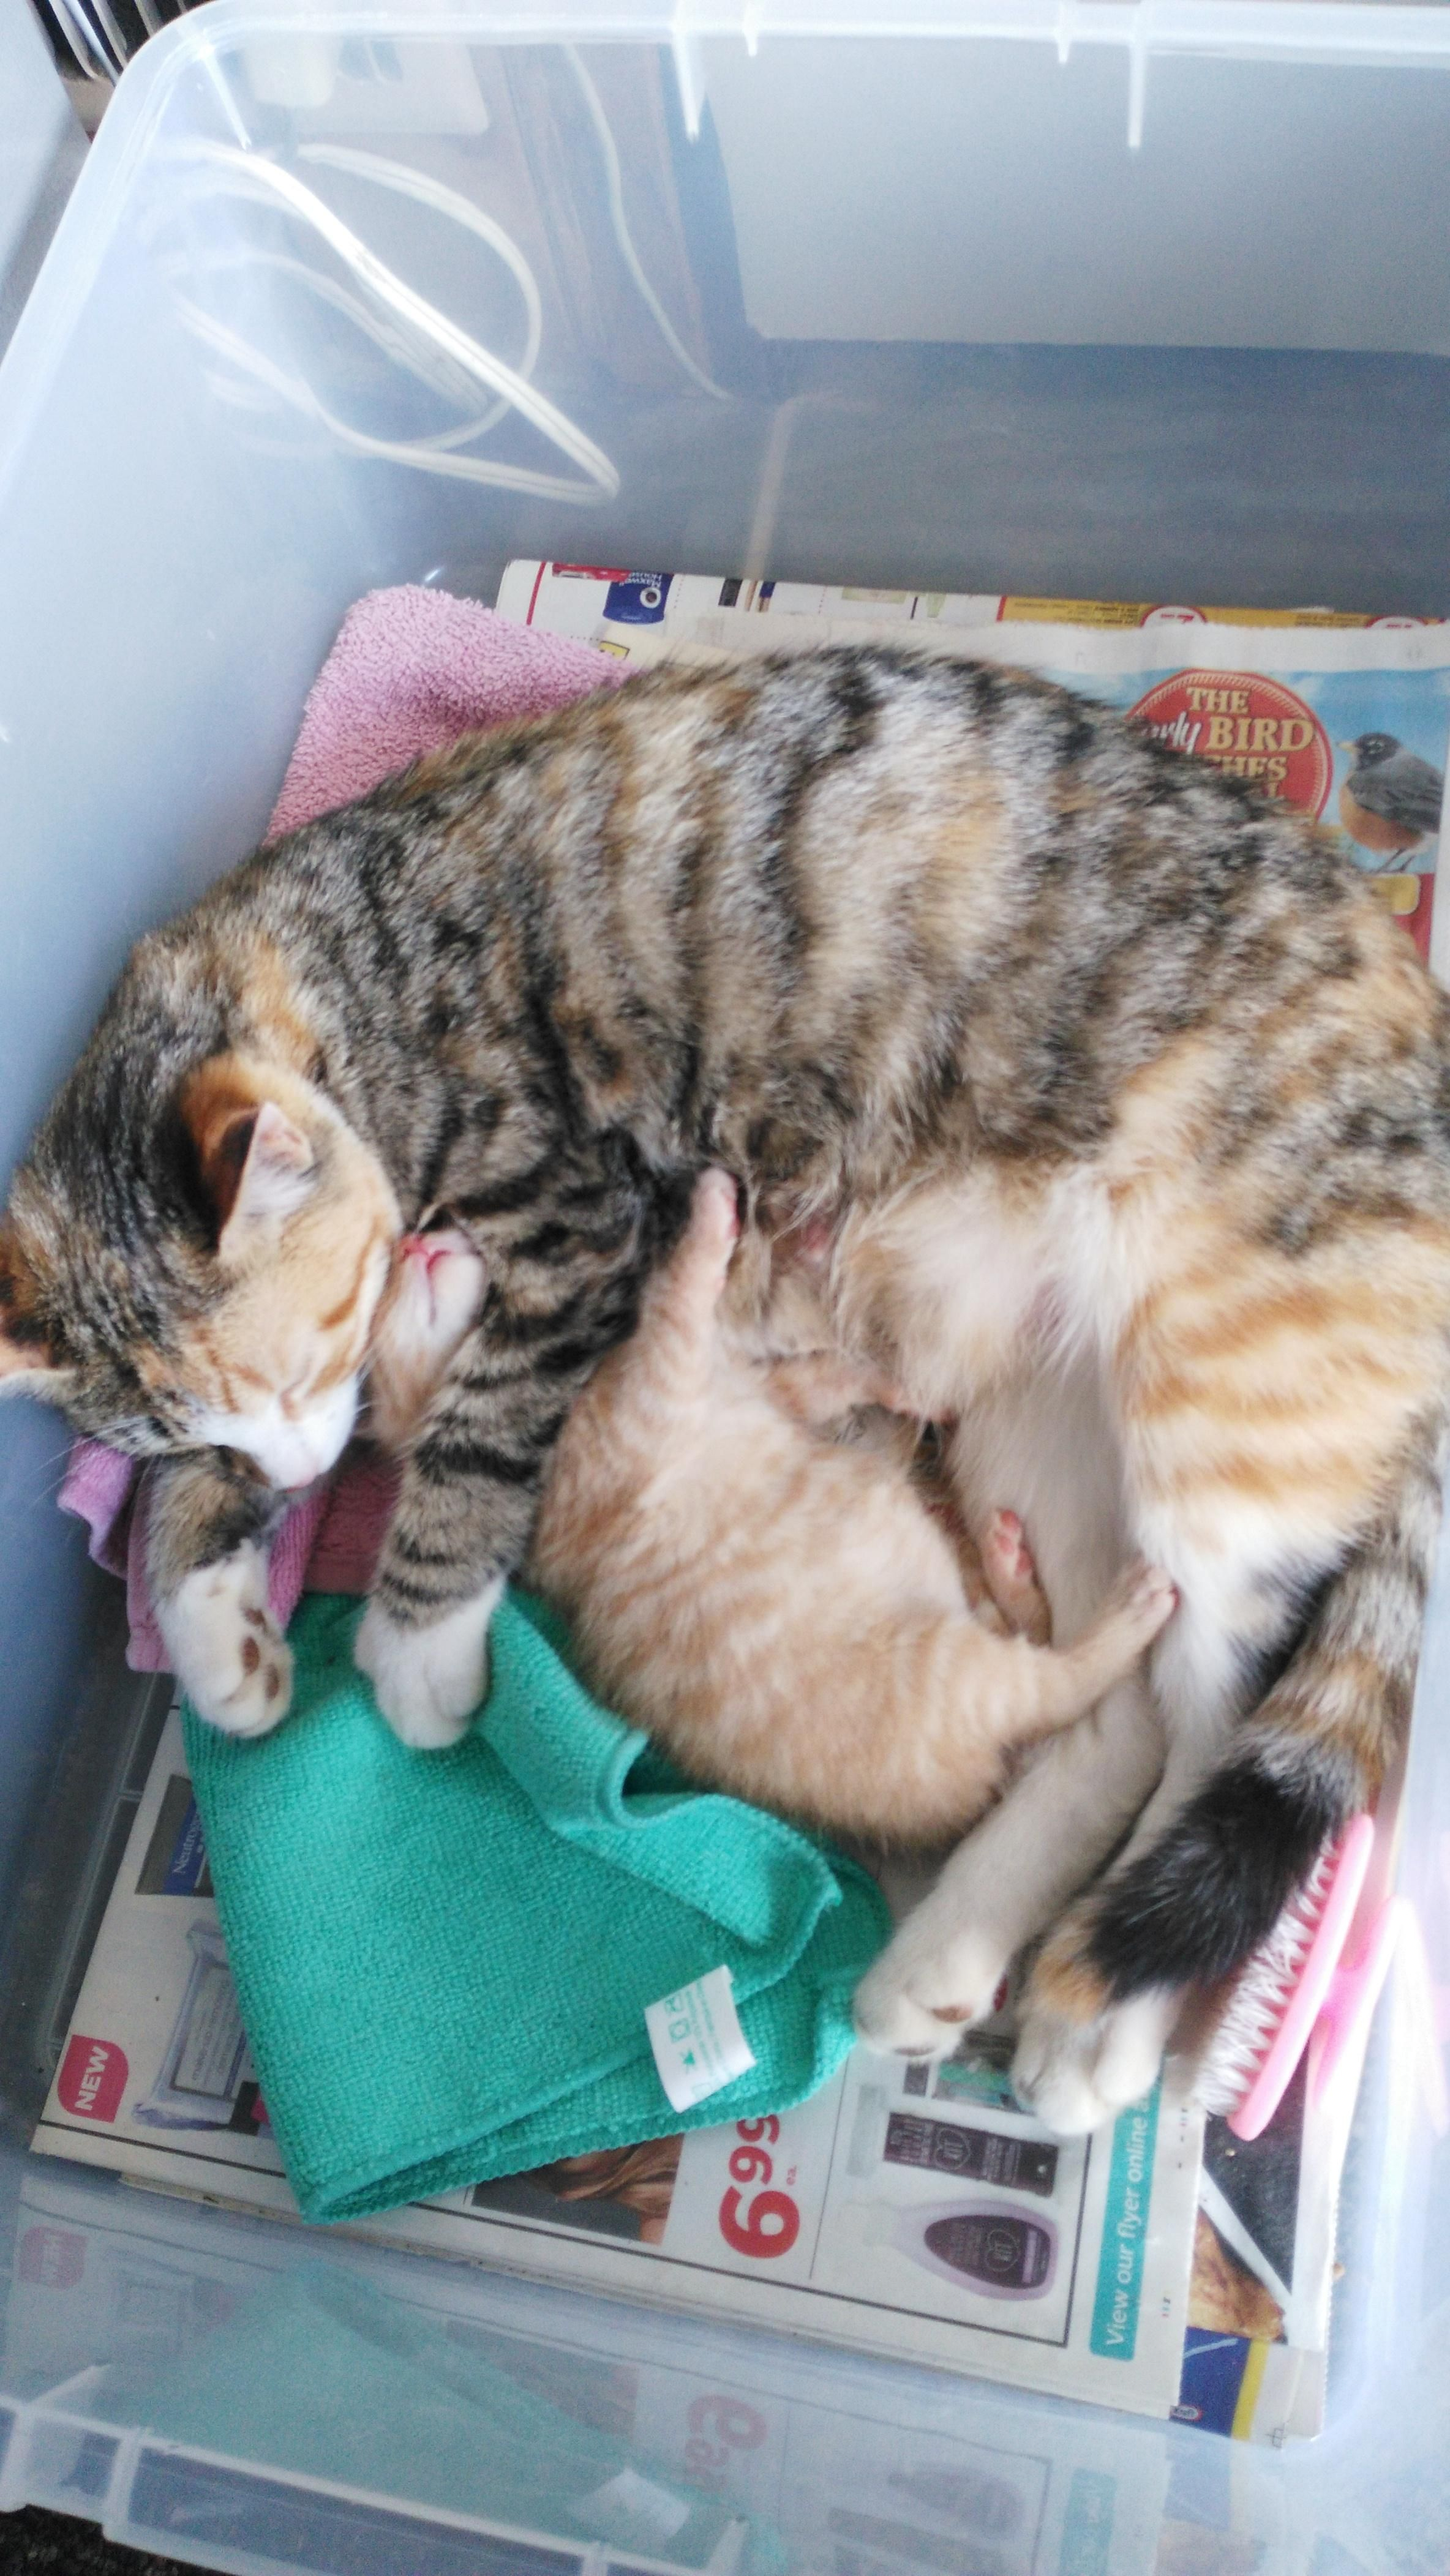 Last Remaining Kitten Of Her First Litter Http Ift Tt 2pcefar With Images Kittens Litter Domestic Cat